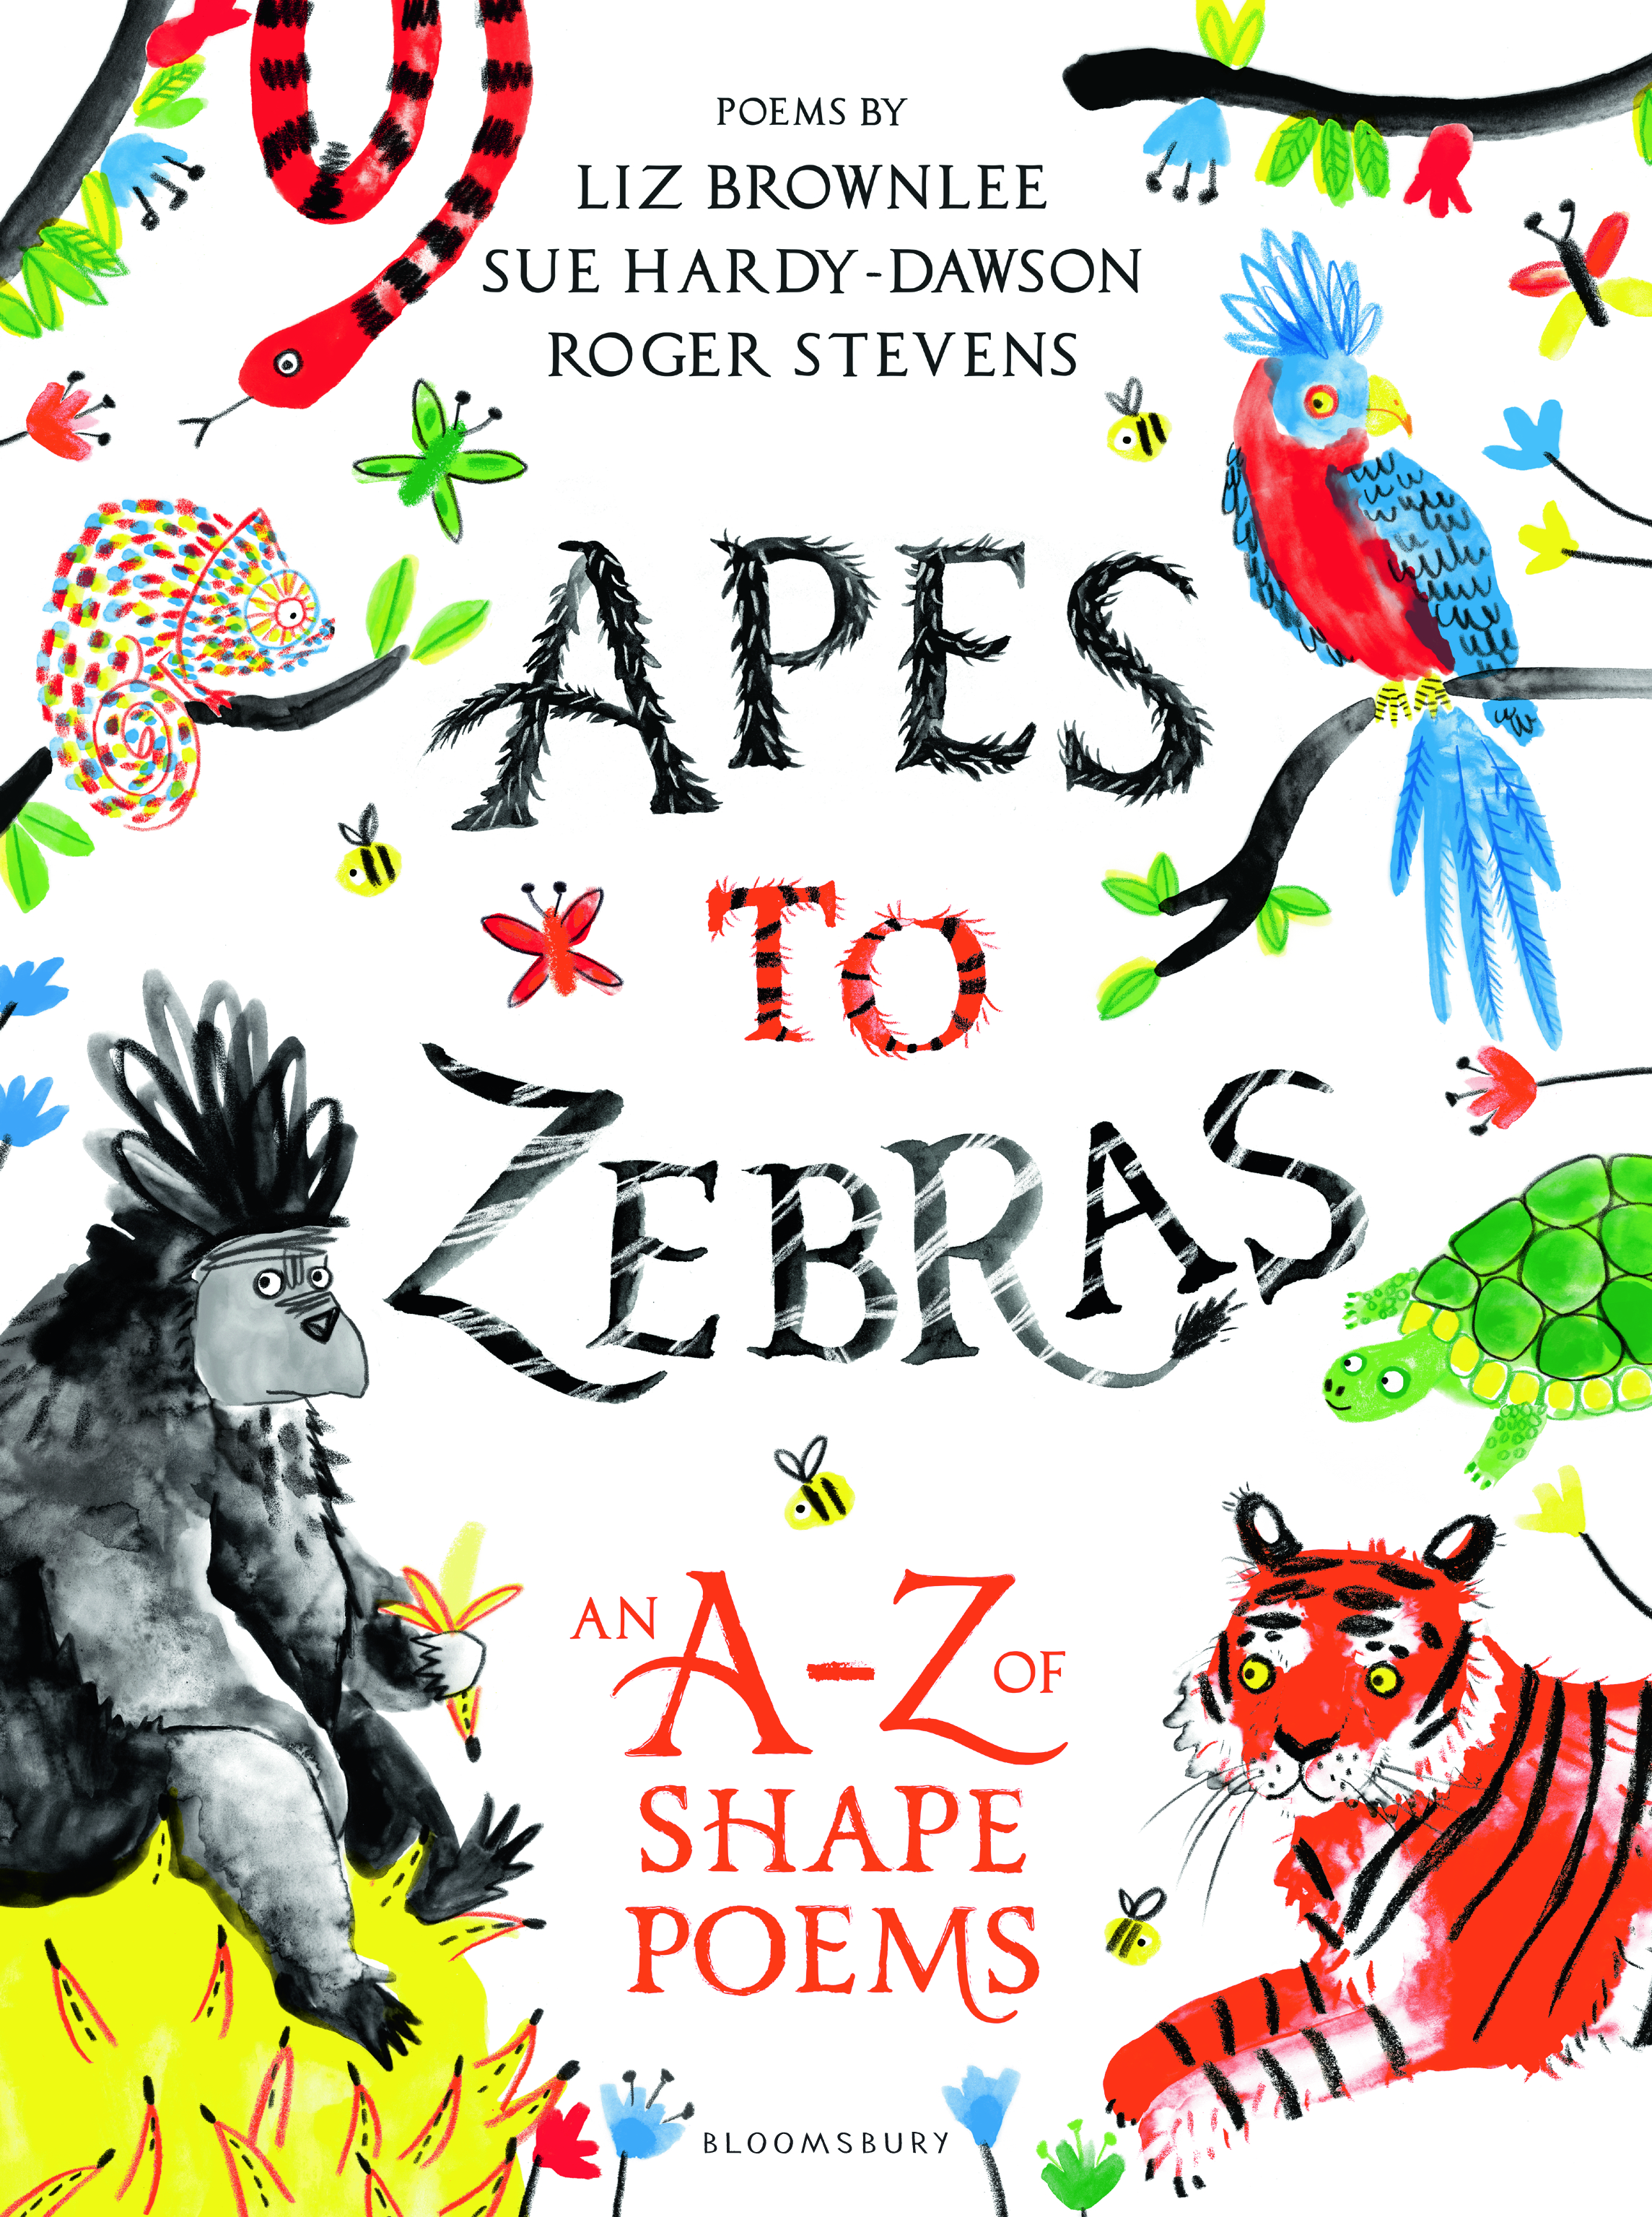 Apes to Zebras, An A-Z of Animal Shape Poems. A extraordinary book full of poems in the shapes of the animals they are about. Great fun and educational.